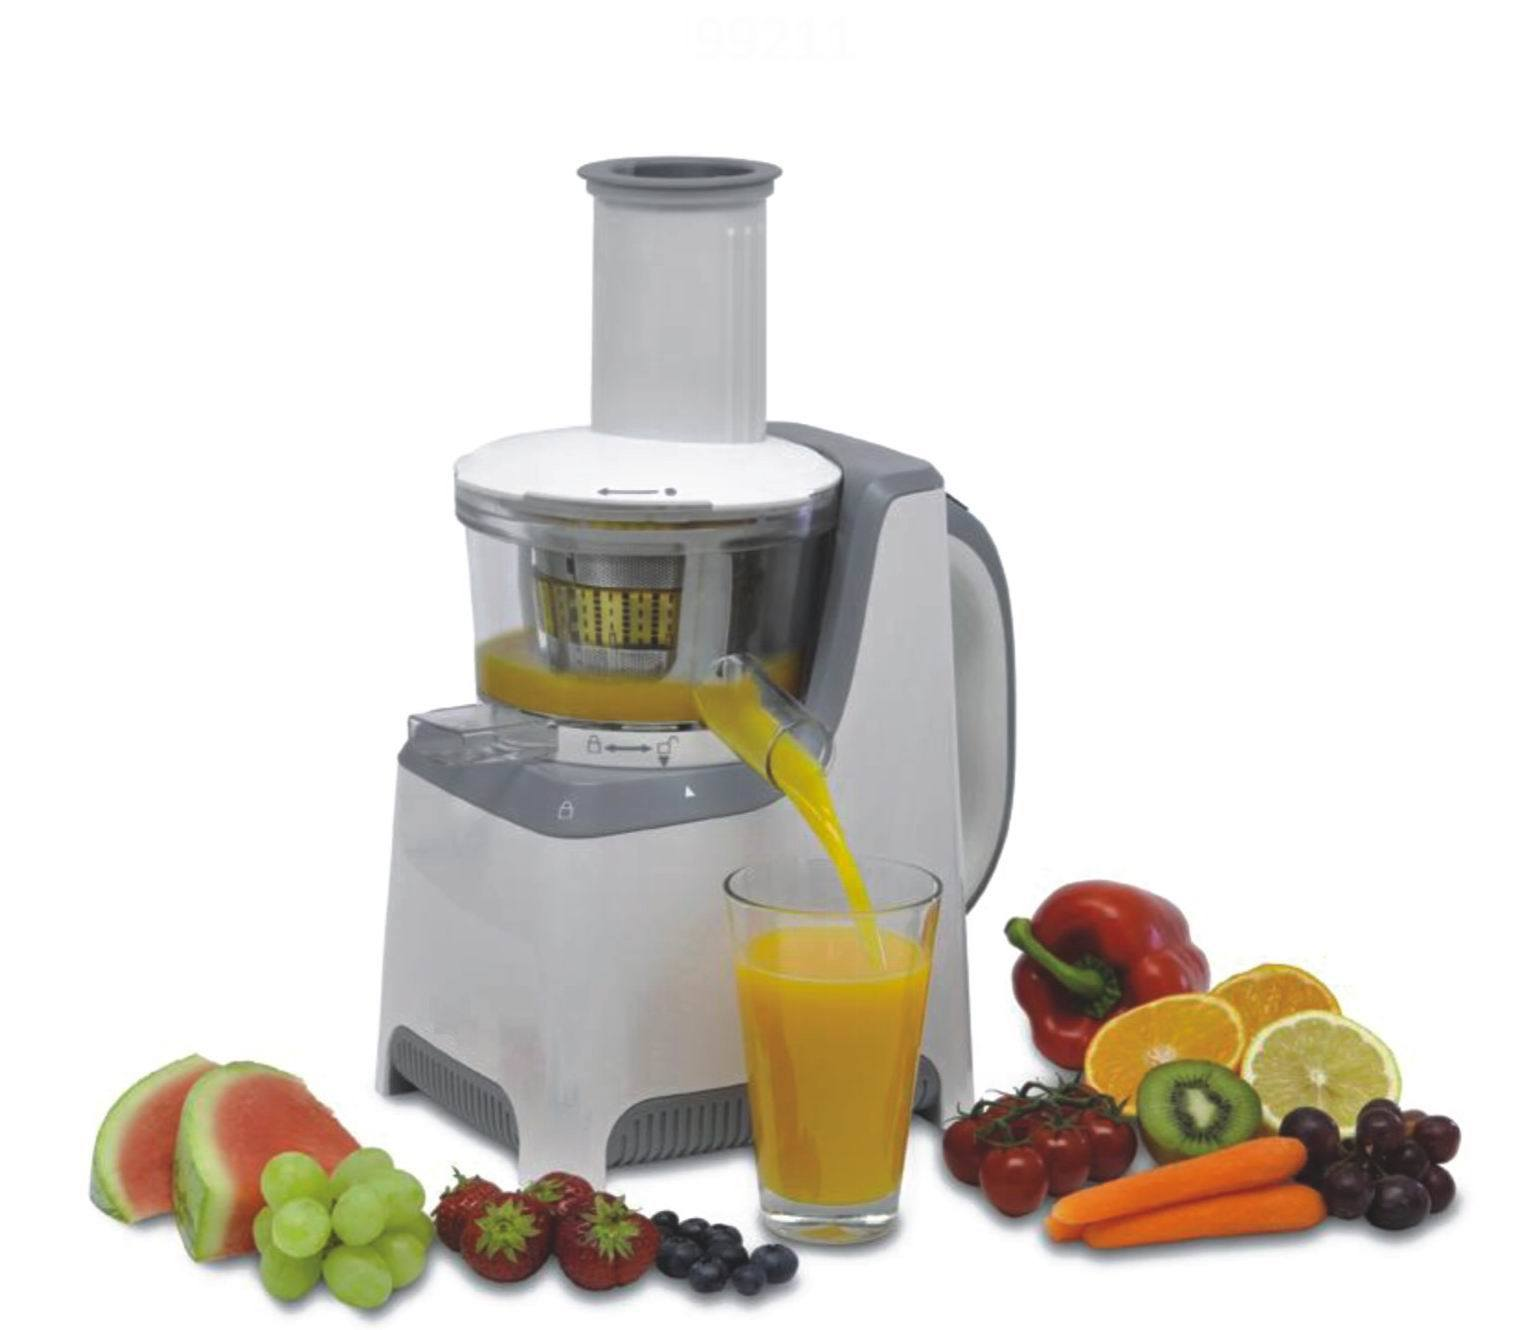 Slow Juicer From China : China Compact Juice Fountain Plus Juice Extractor/ Pink - China Slow Juicer, Single Auger Juicer